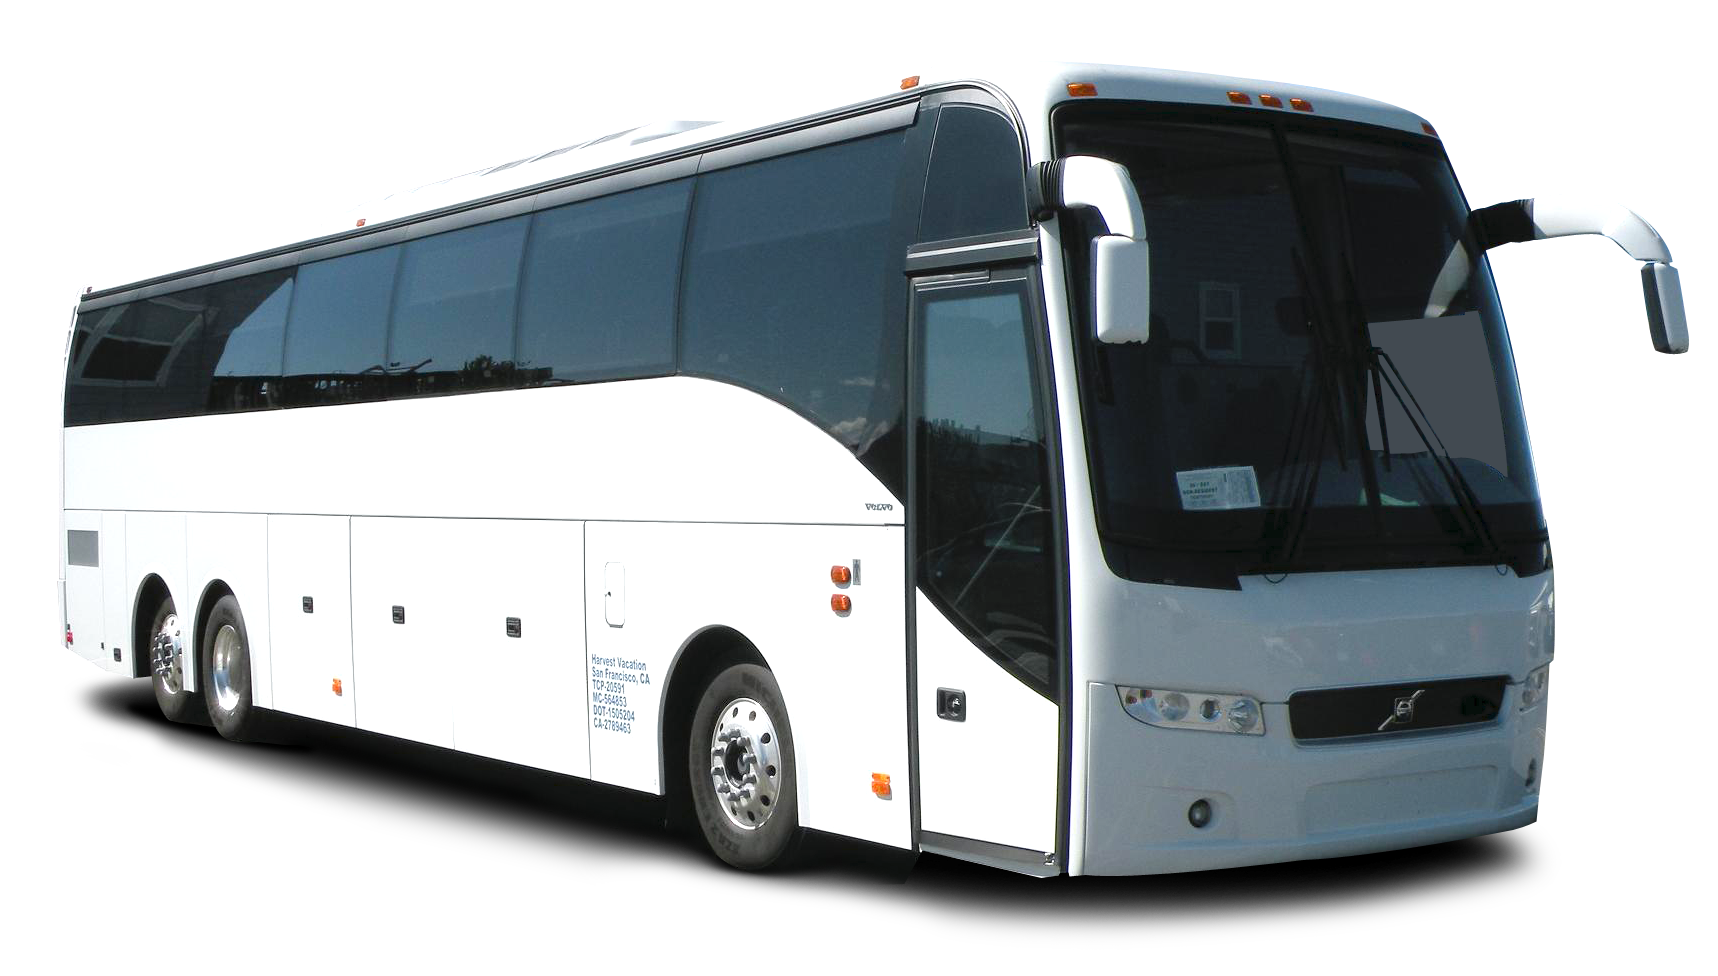 Bus Png image #40029